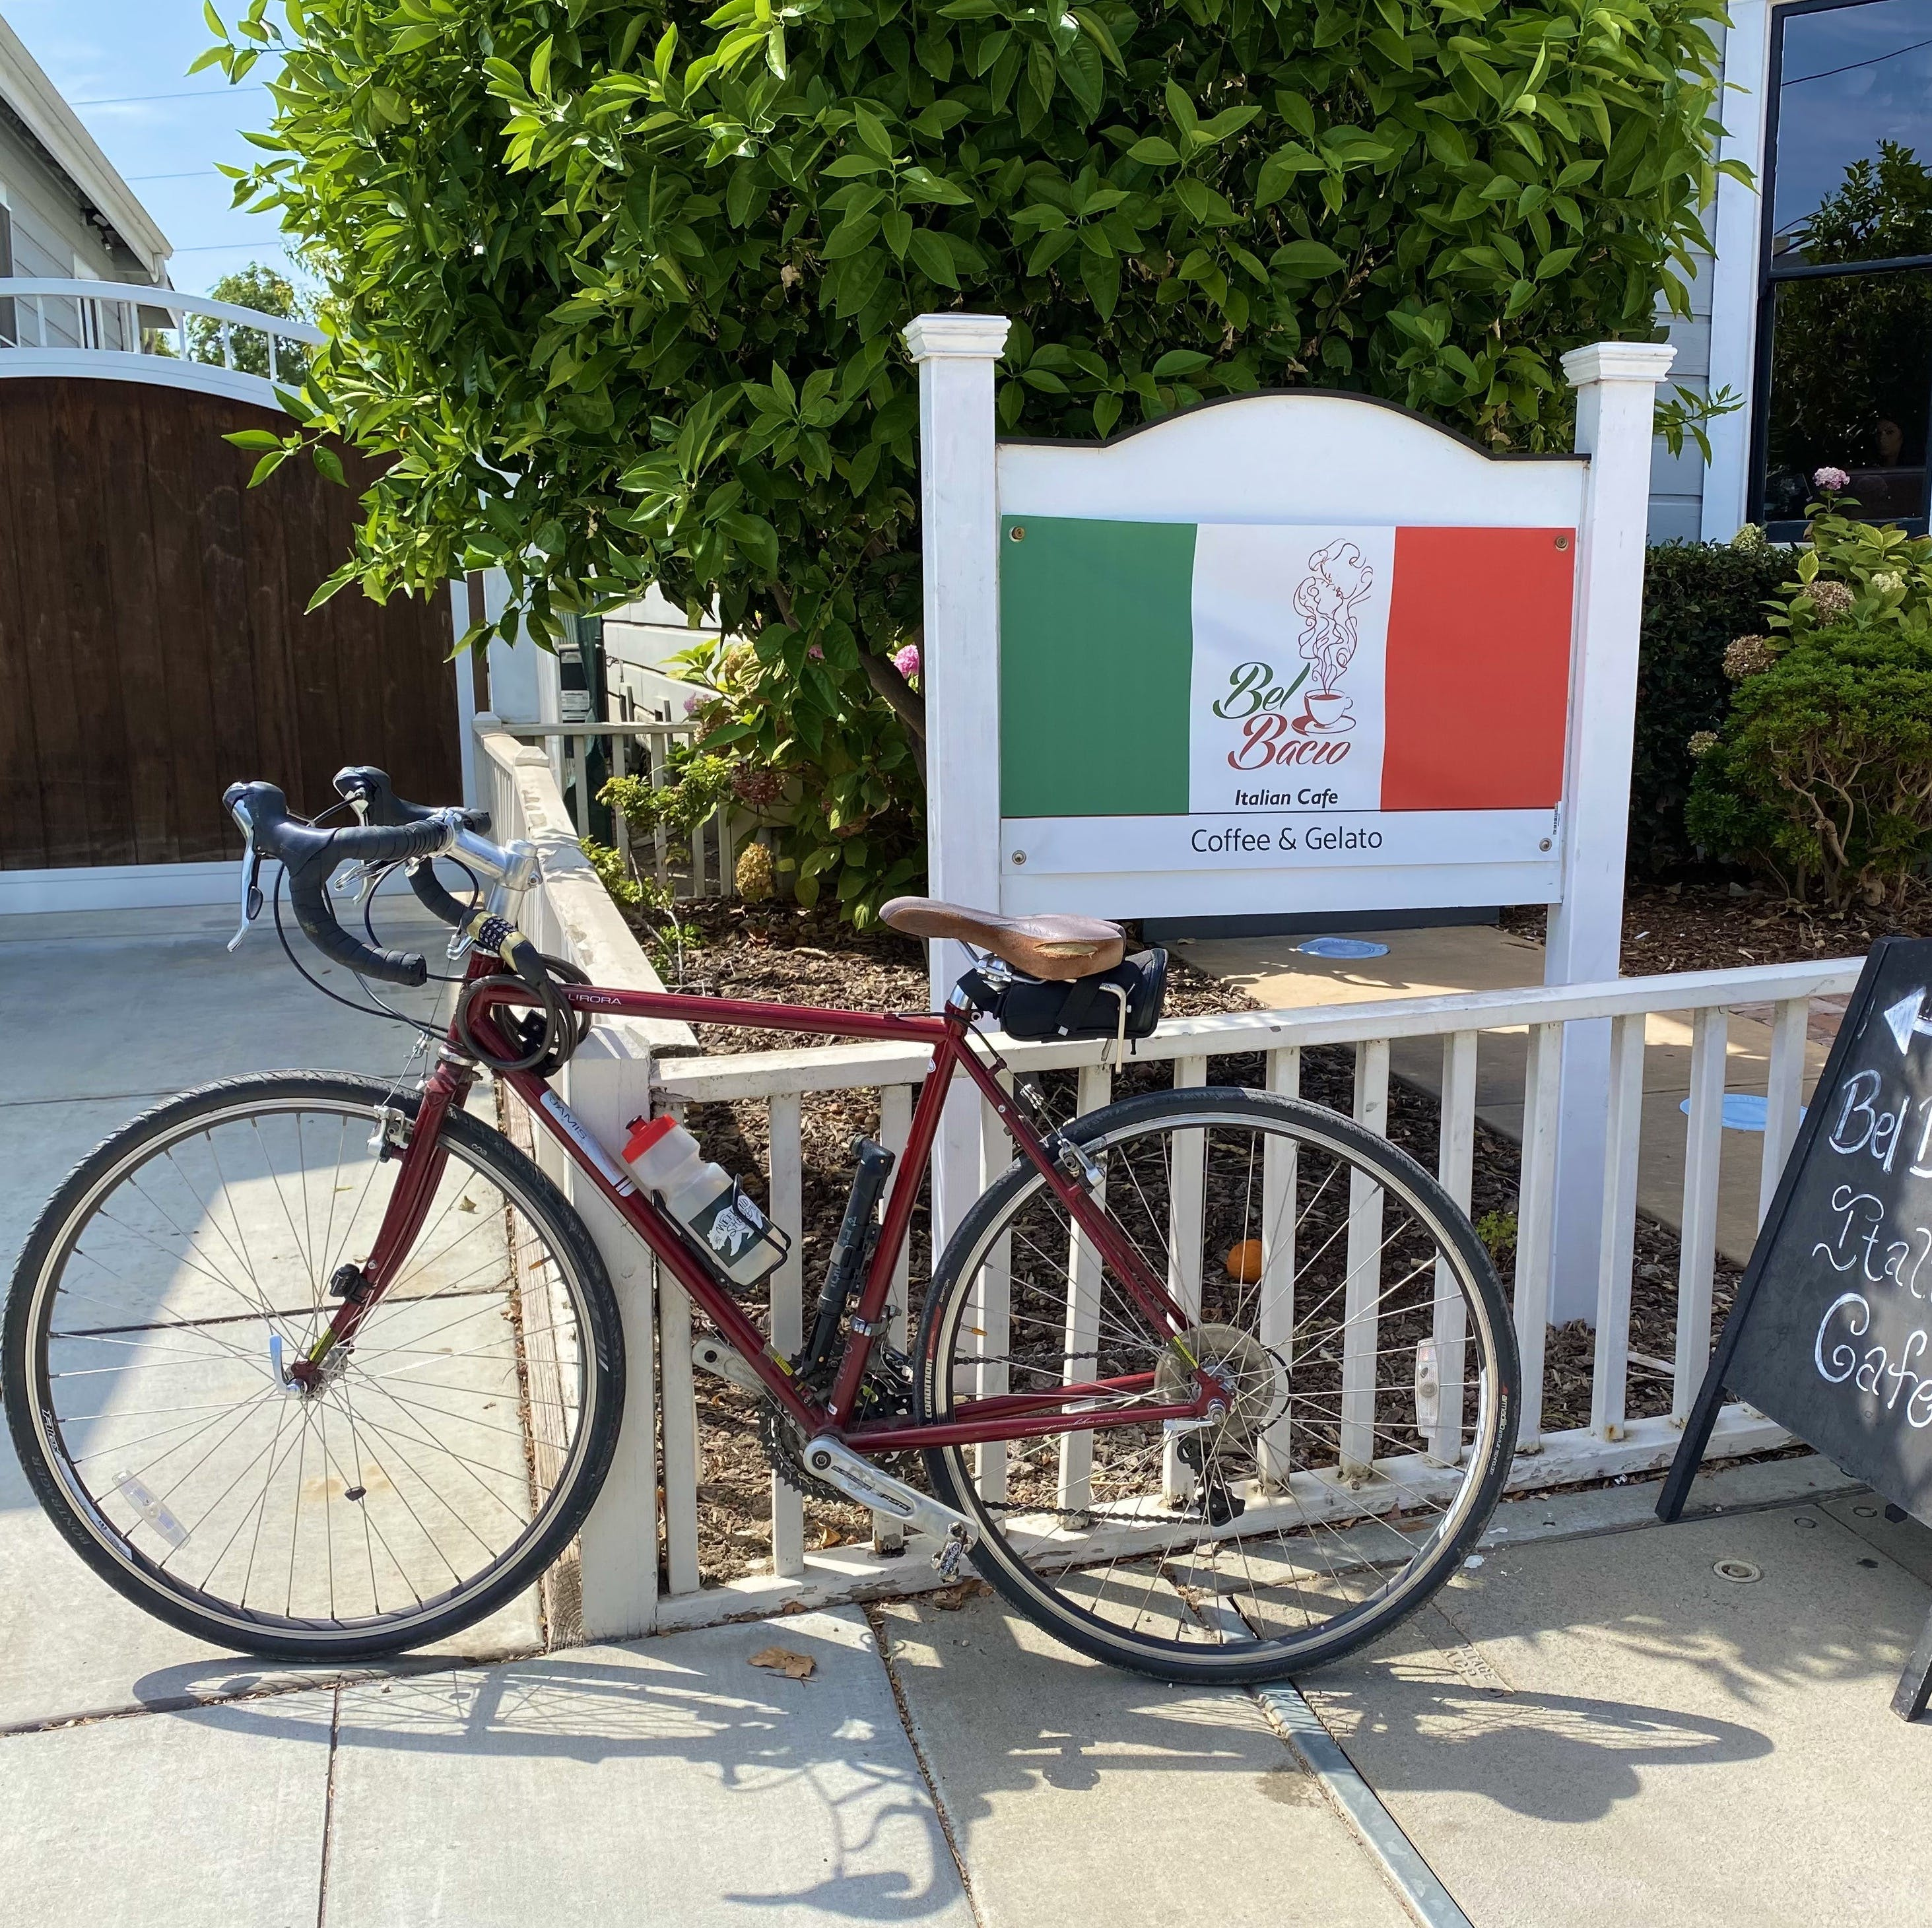 Bike parked in front of a bistro cafe in Little Italy San Jose